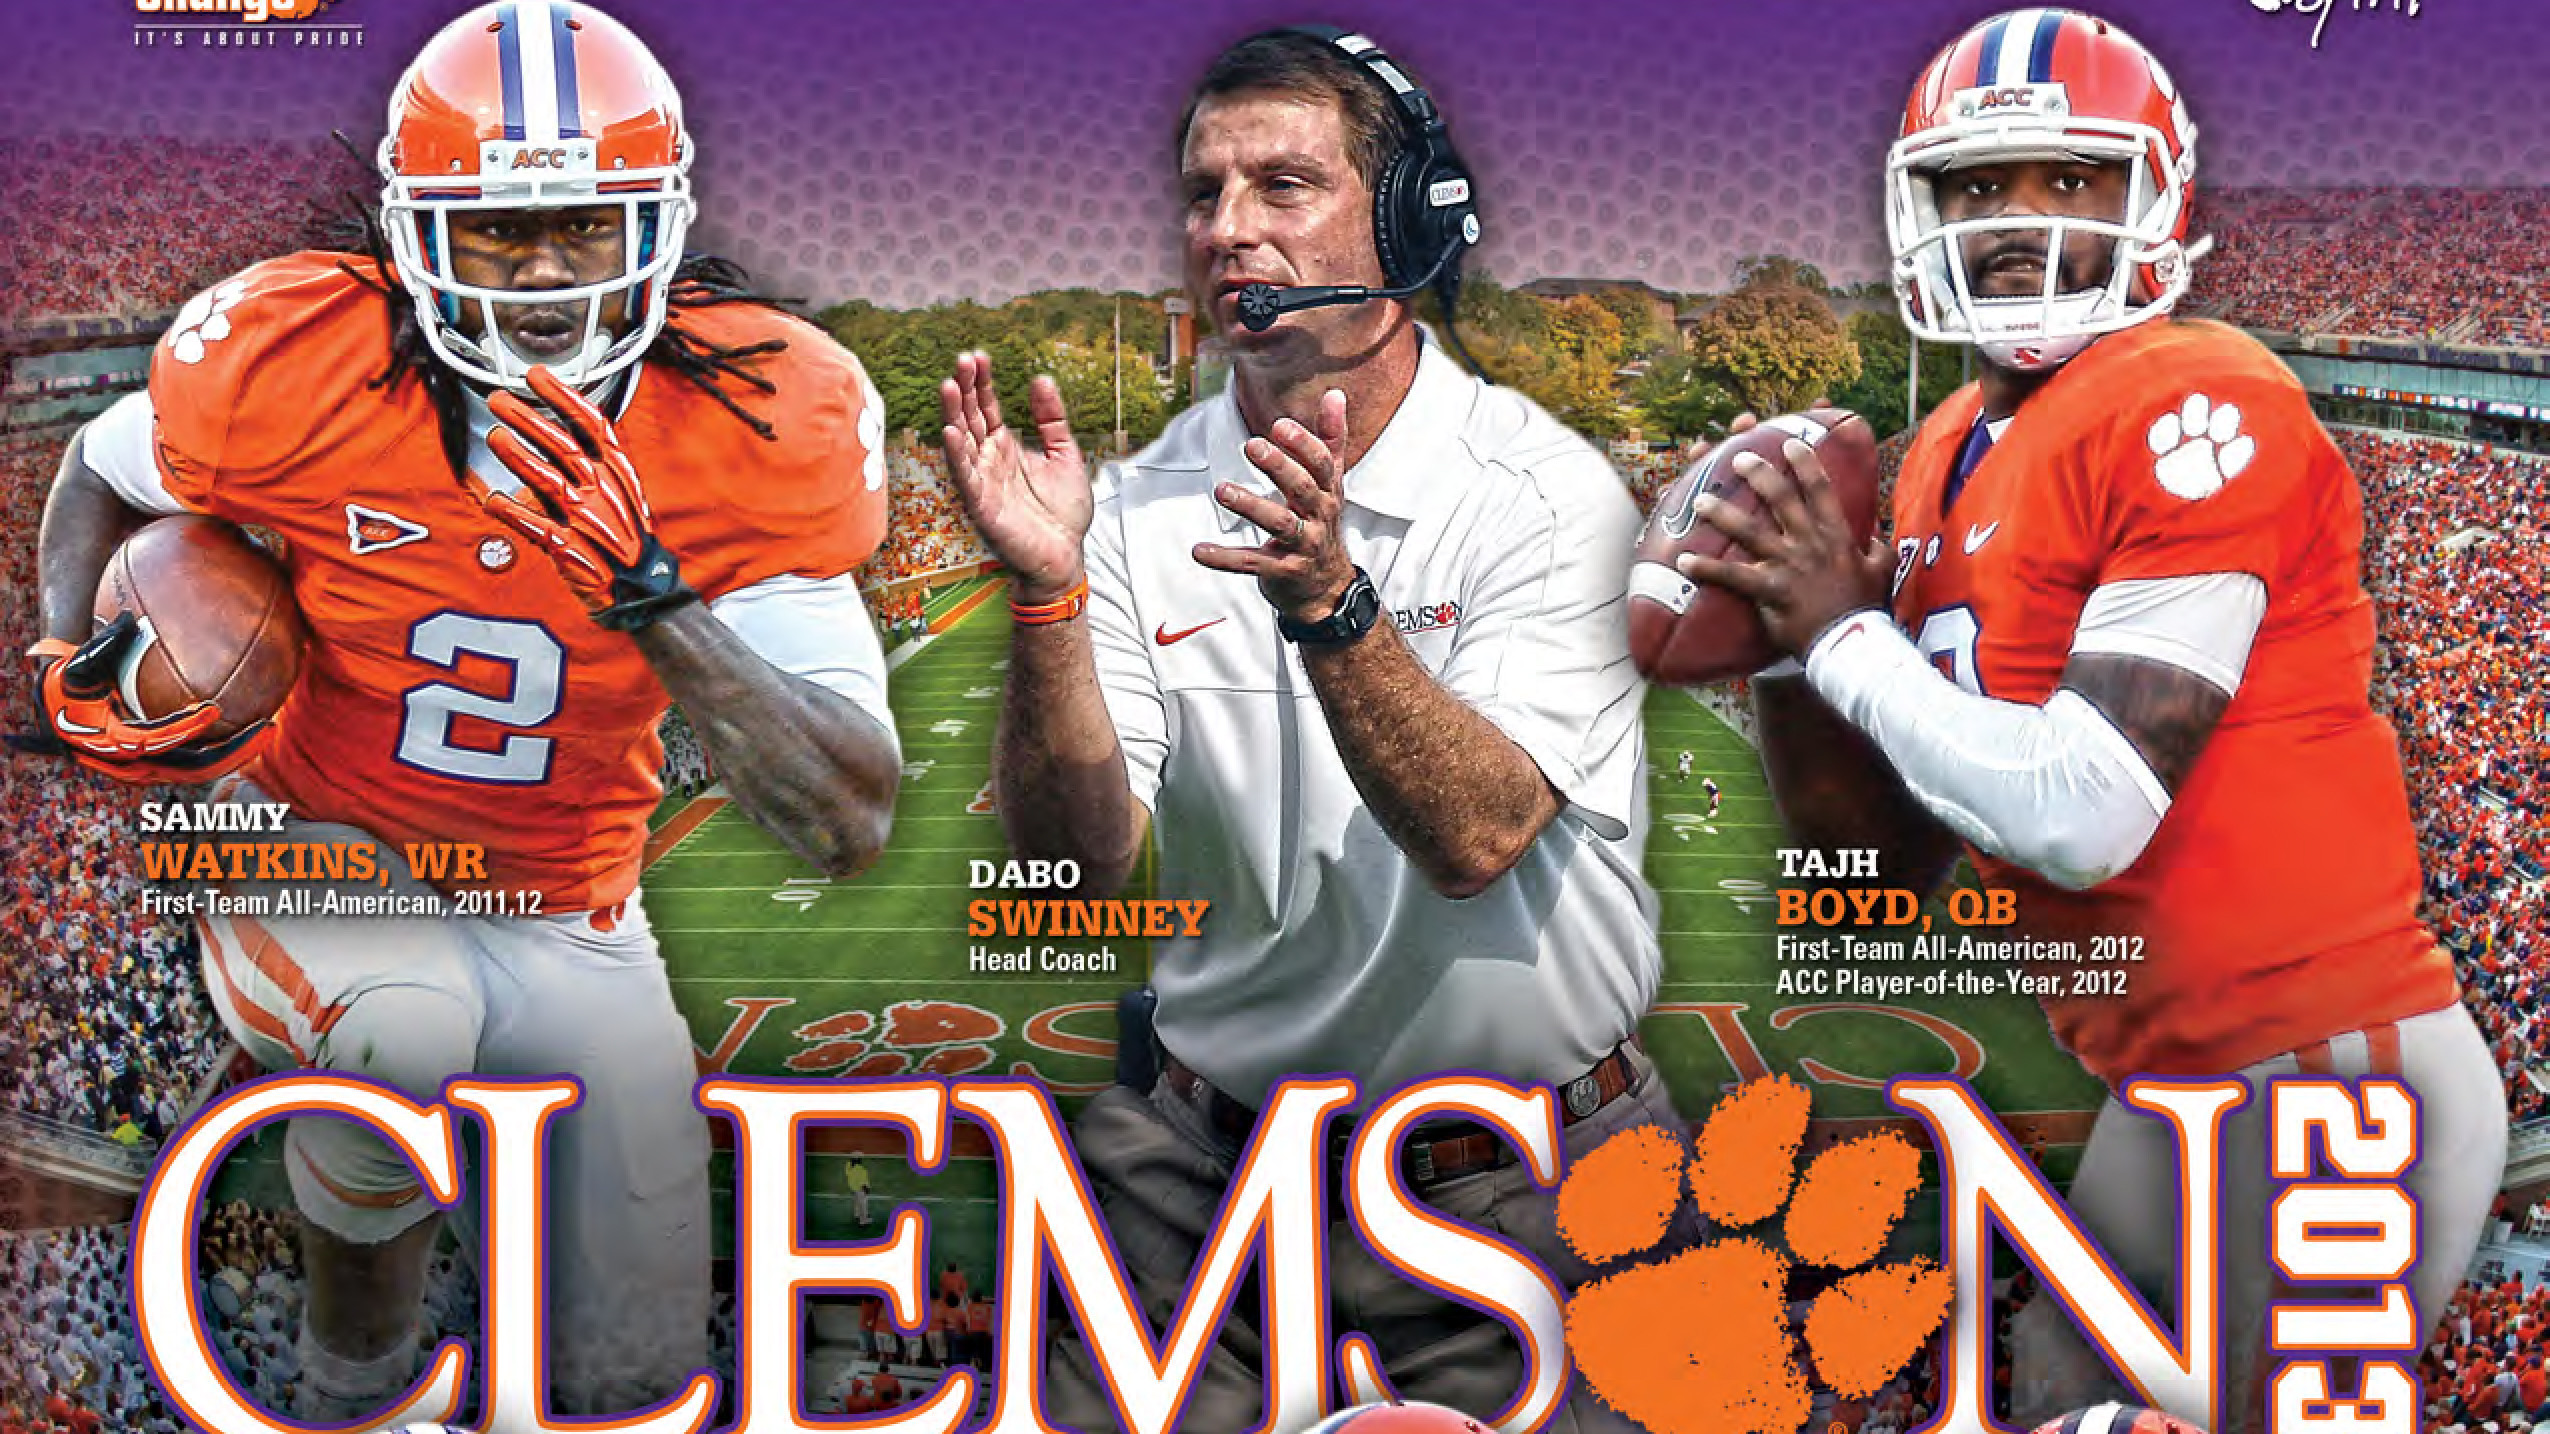 Clemson Football Media Guides Available